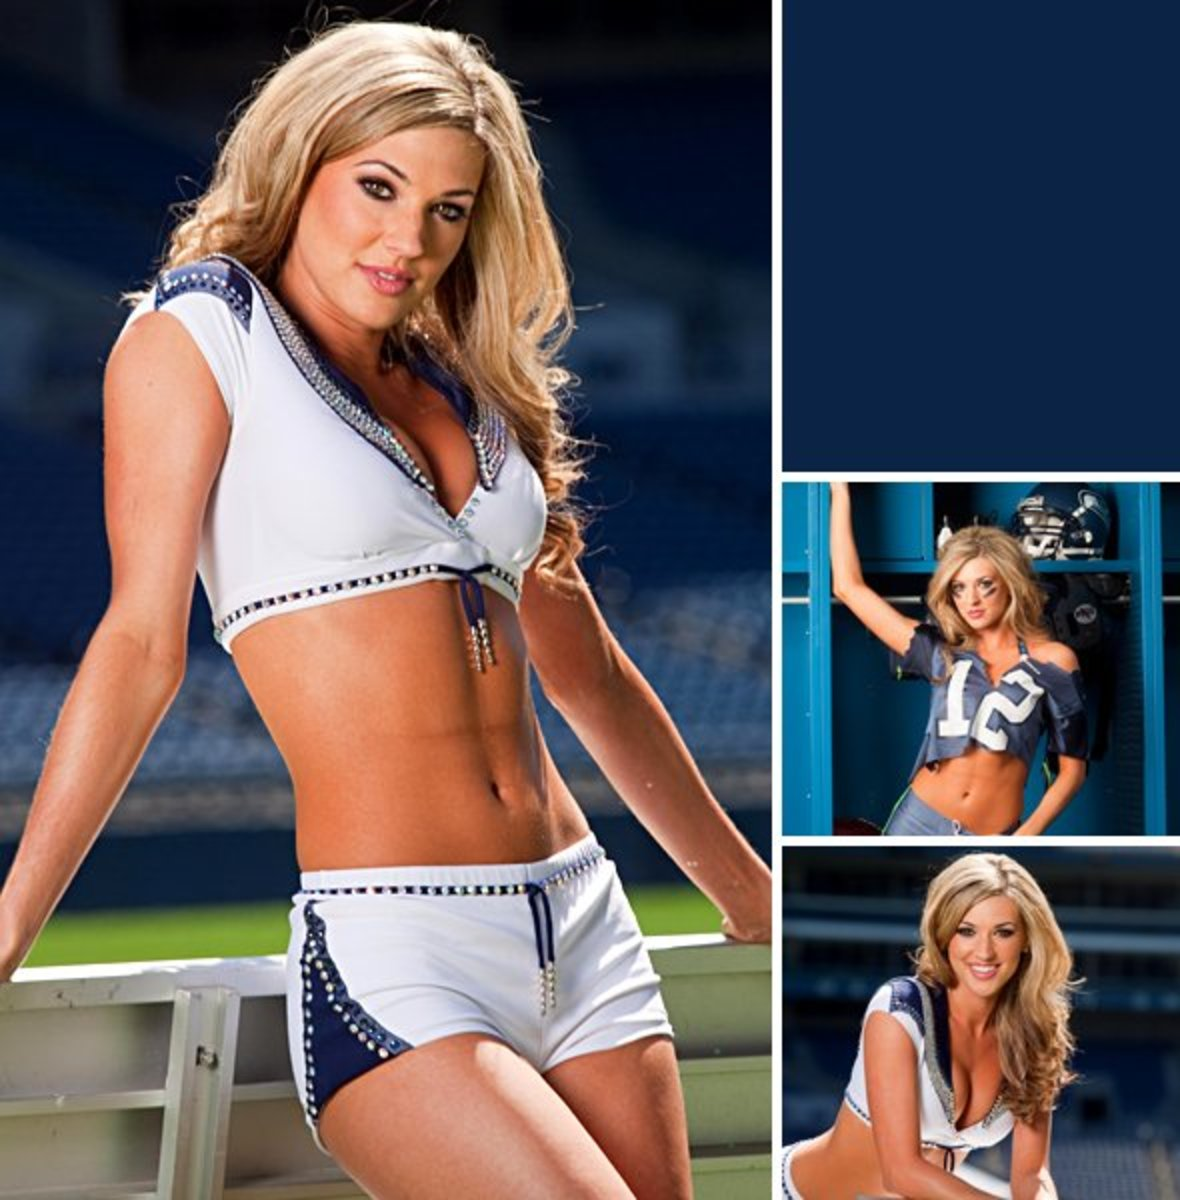 Top Ten Hottest NFL Cheerleaders